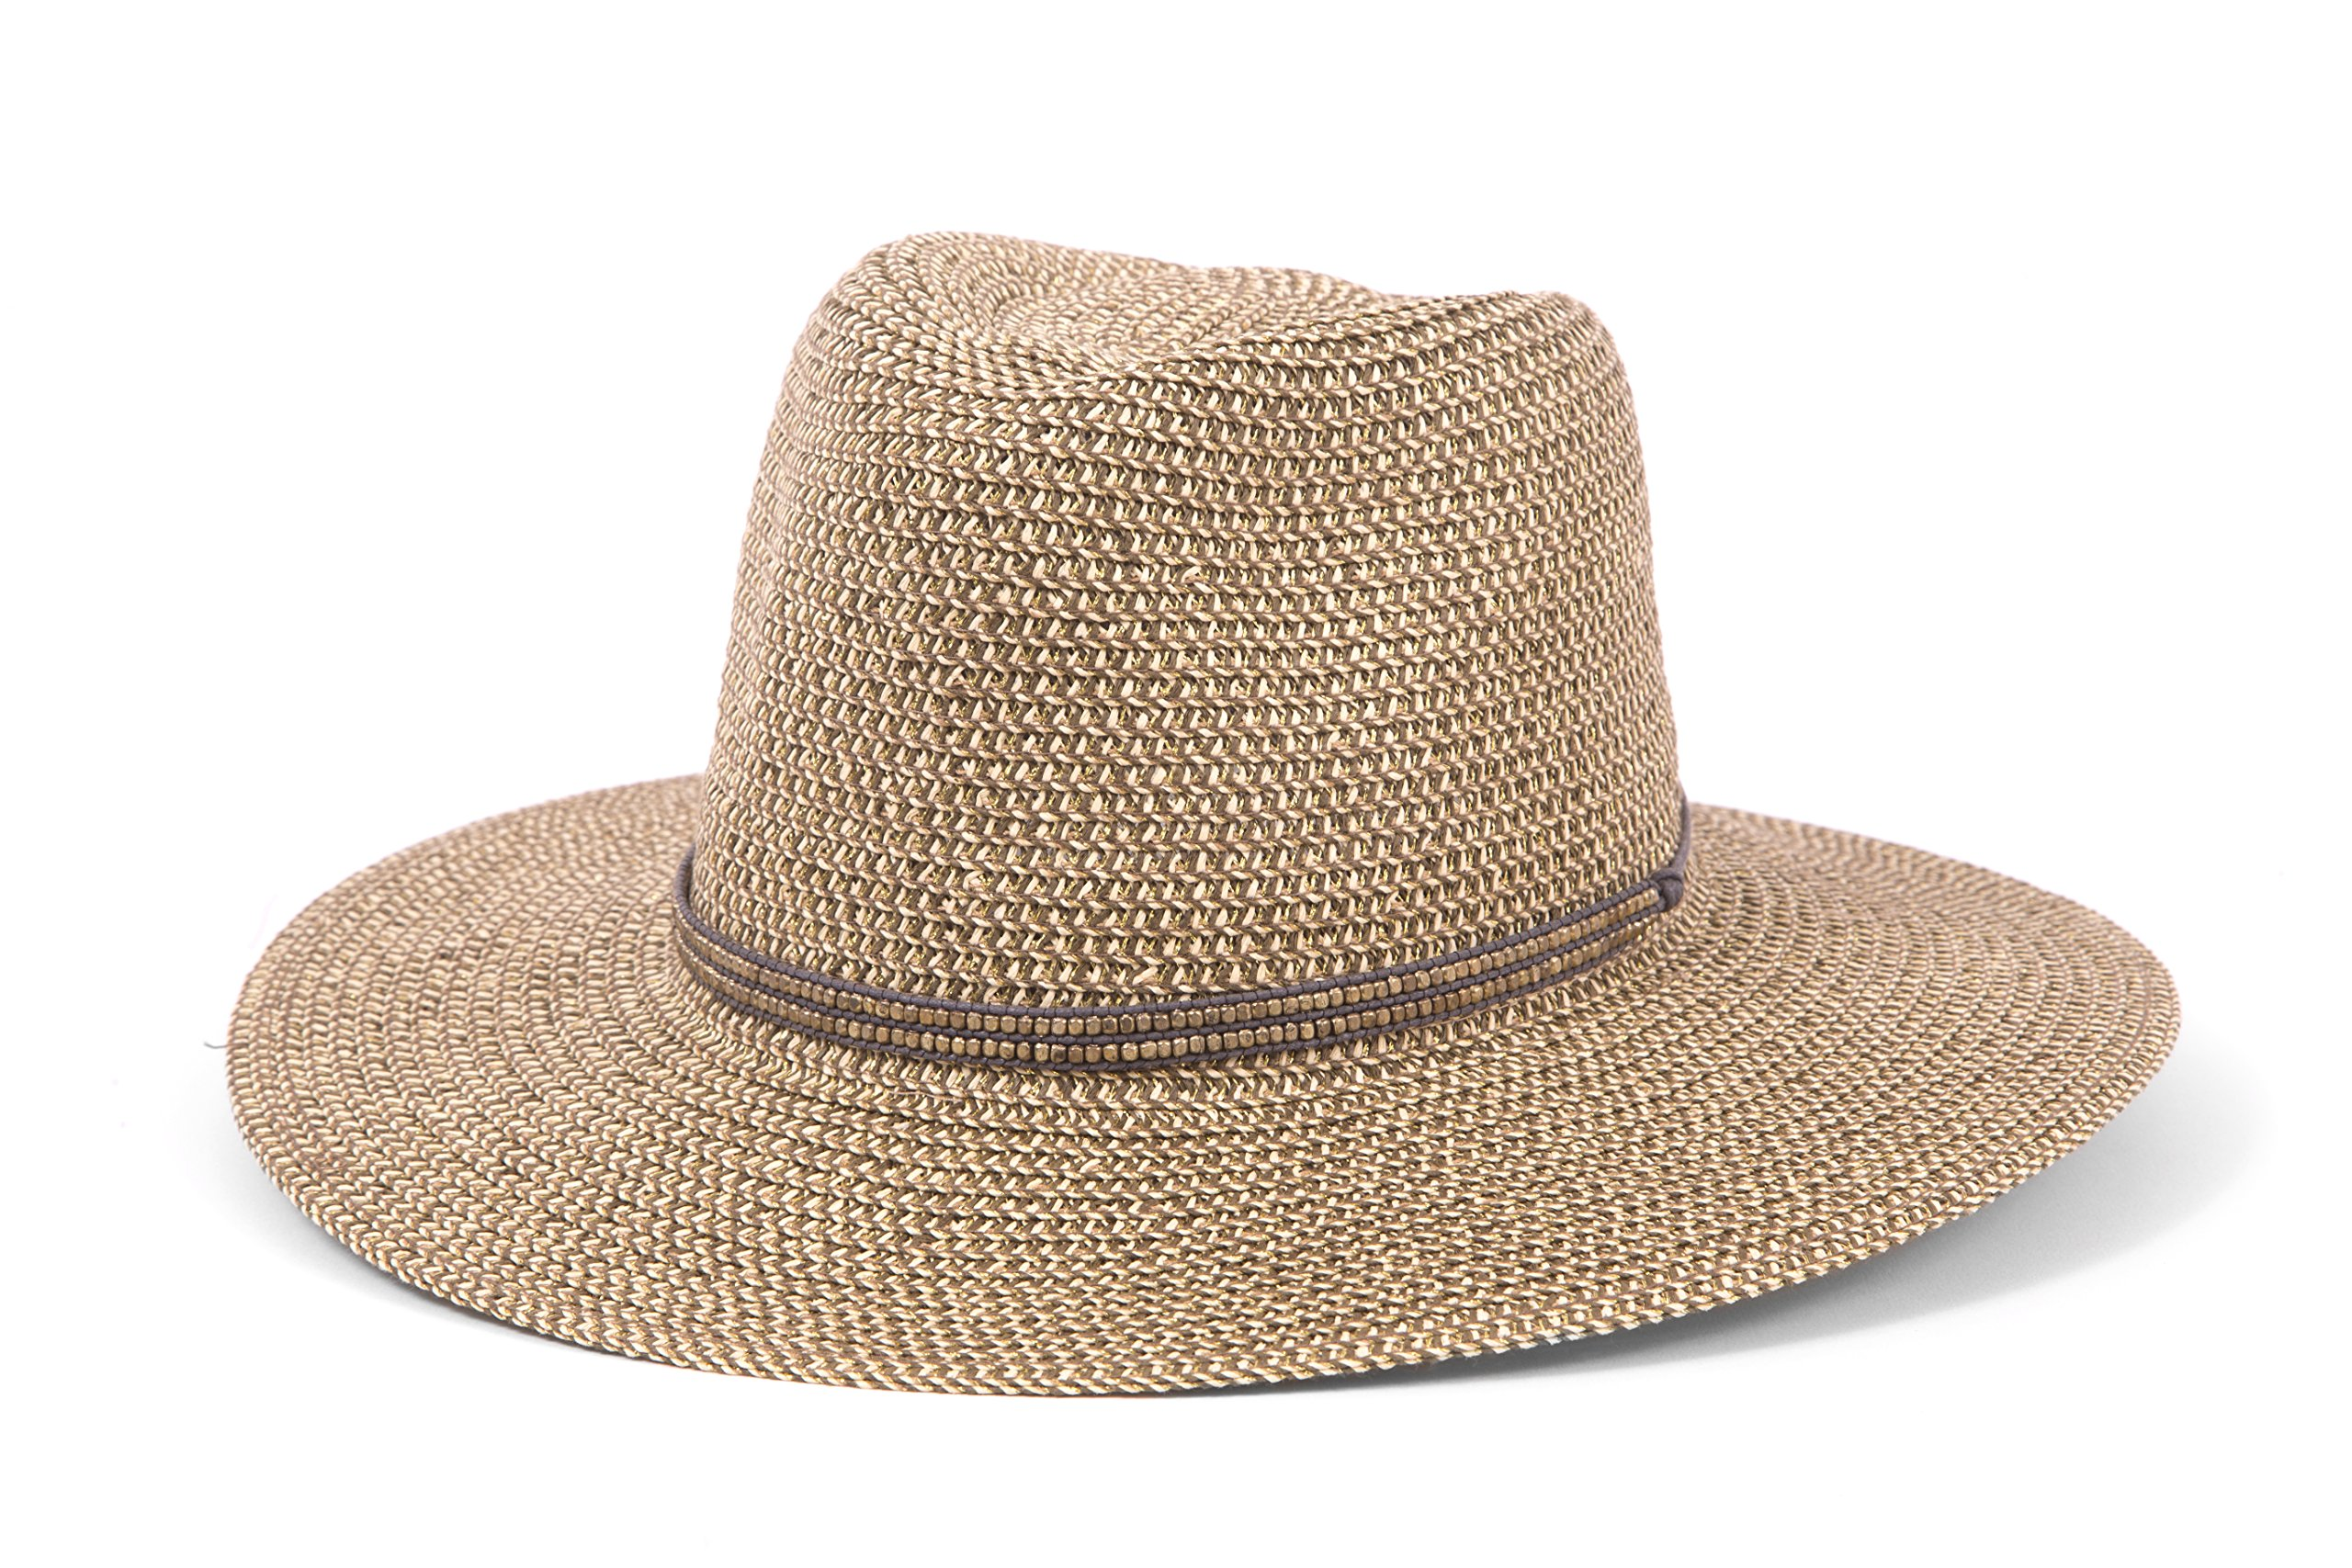 ale by Alessandra Women's Kenzie Toyo Straw Fedora Sunhat Packable & Adjustable, Grey, One Size